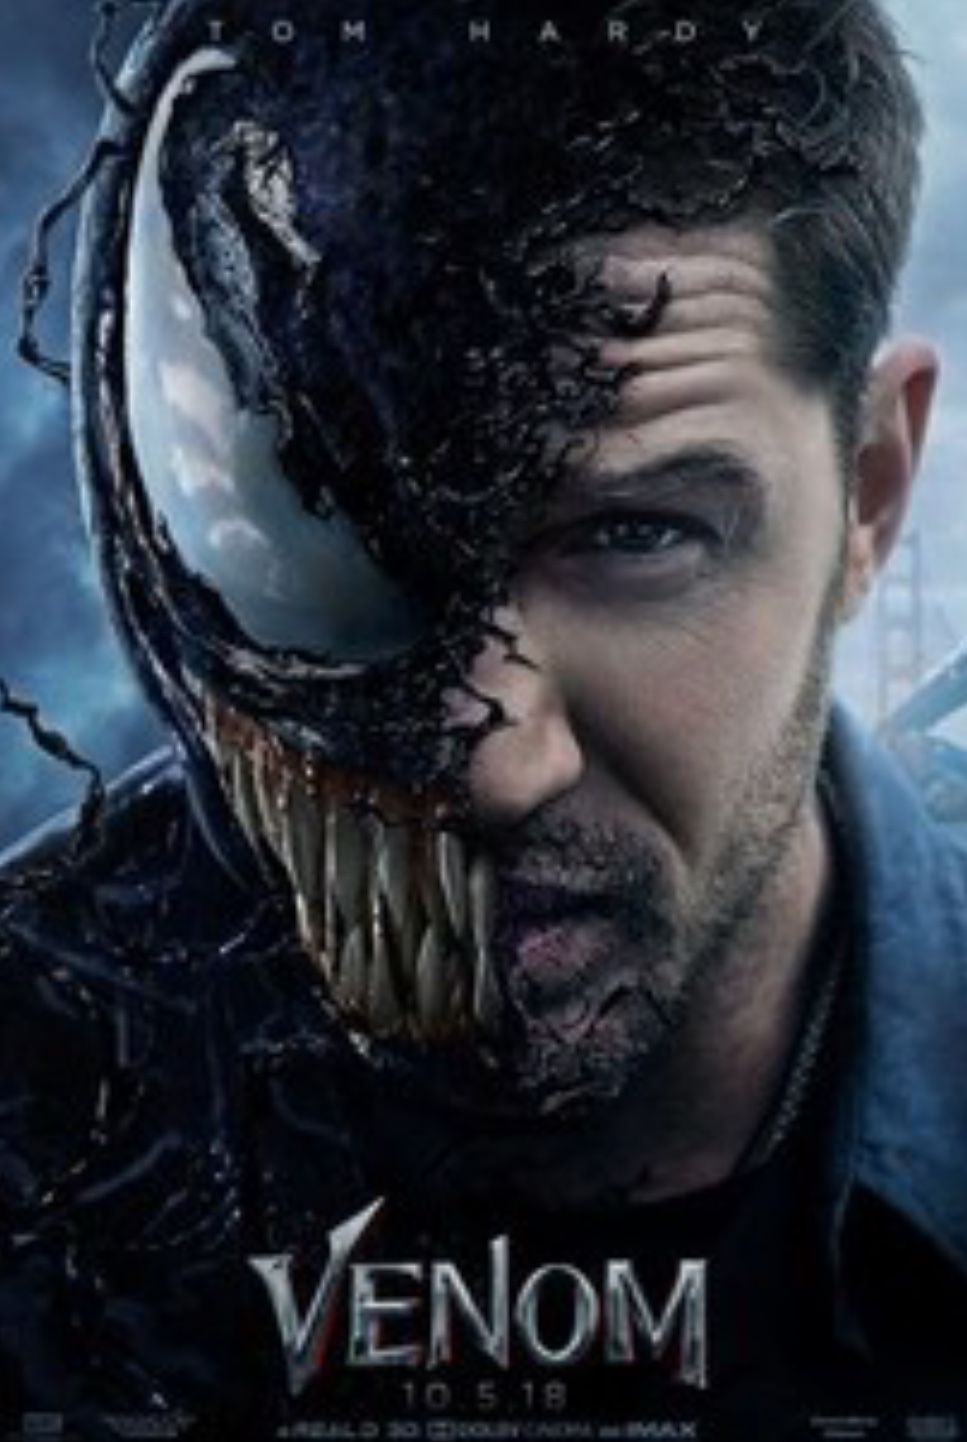 Venom is a Marvel movie with no affiliation to the Avengers or any of the other MCU characters. The movie was released on October 5, 2018. Fair Use: photo from Rotten Tomatoes